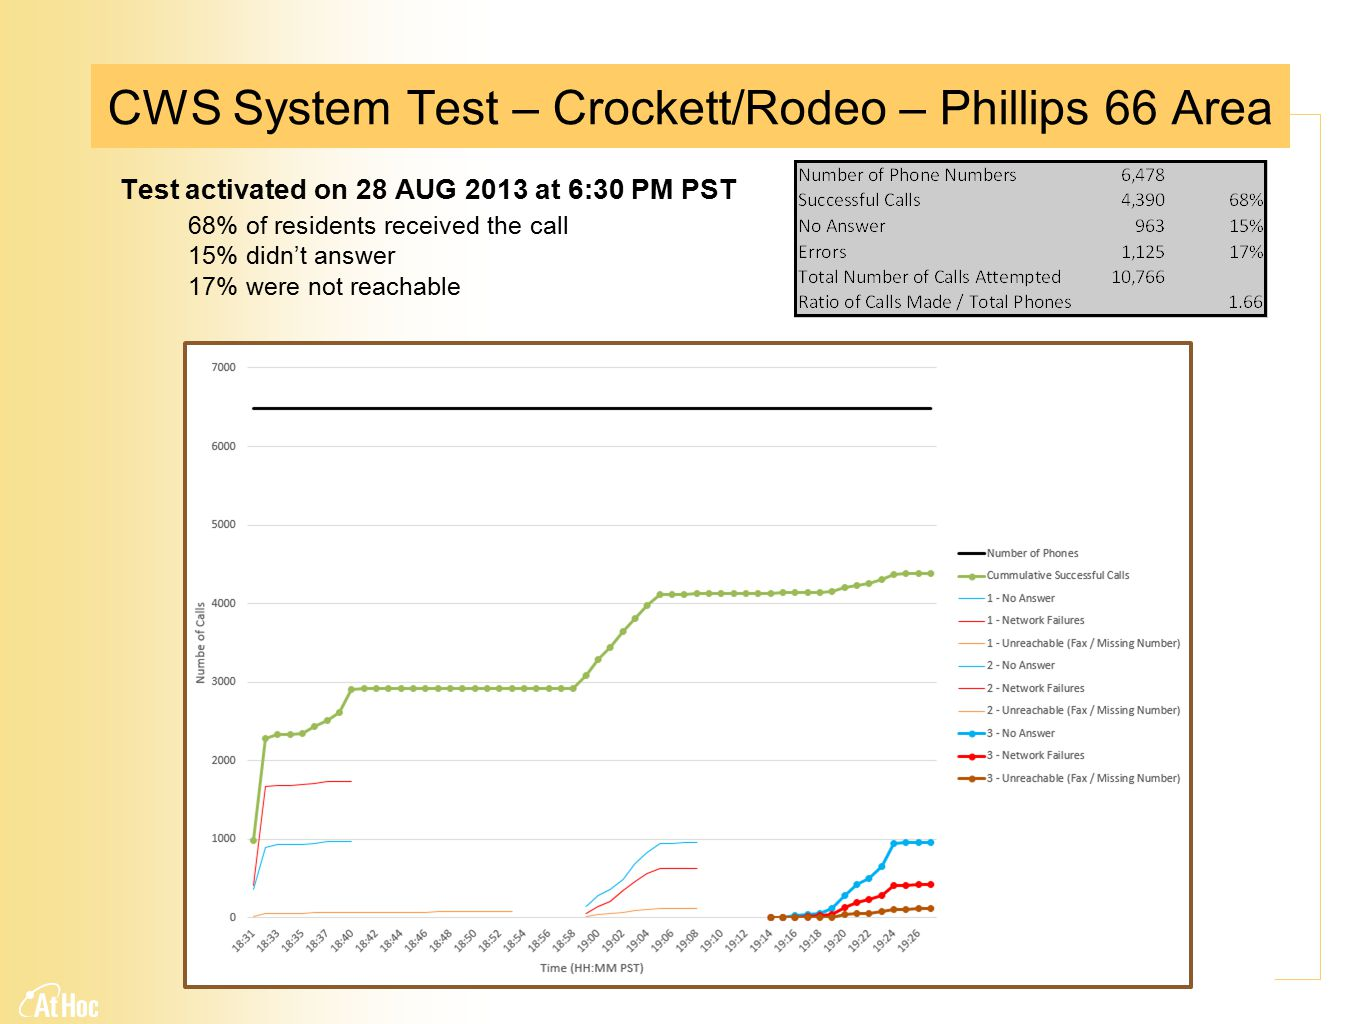 CWS System Test – Crockett/Rodeo – Phillips 66 Area Test activated on 28 AUG 2013 at 6:30 PM PST 68% of residents received the call 15% didn't answer 17% were not reachable